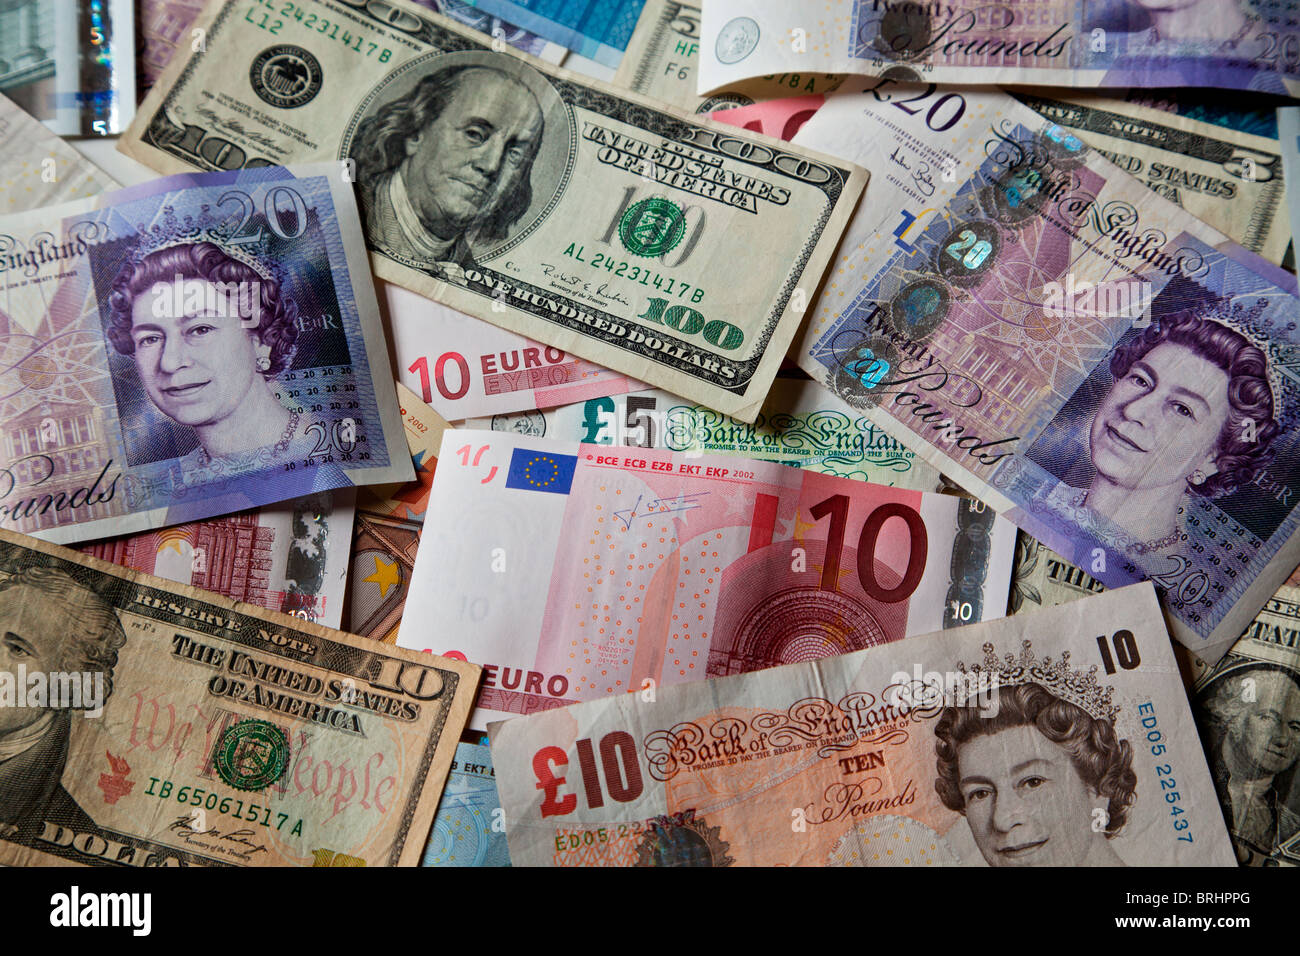 Sterling, dollar and euro bank notes - Stock Image